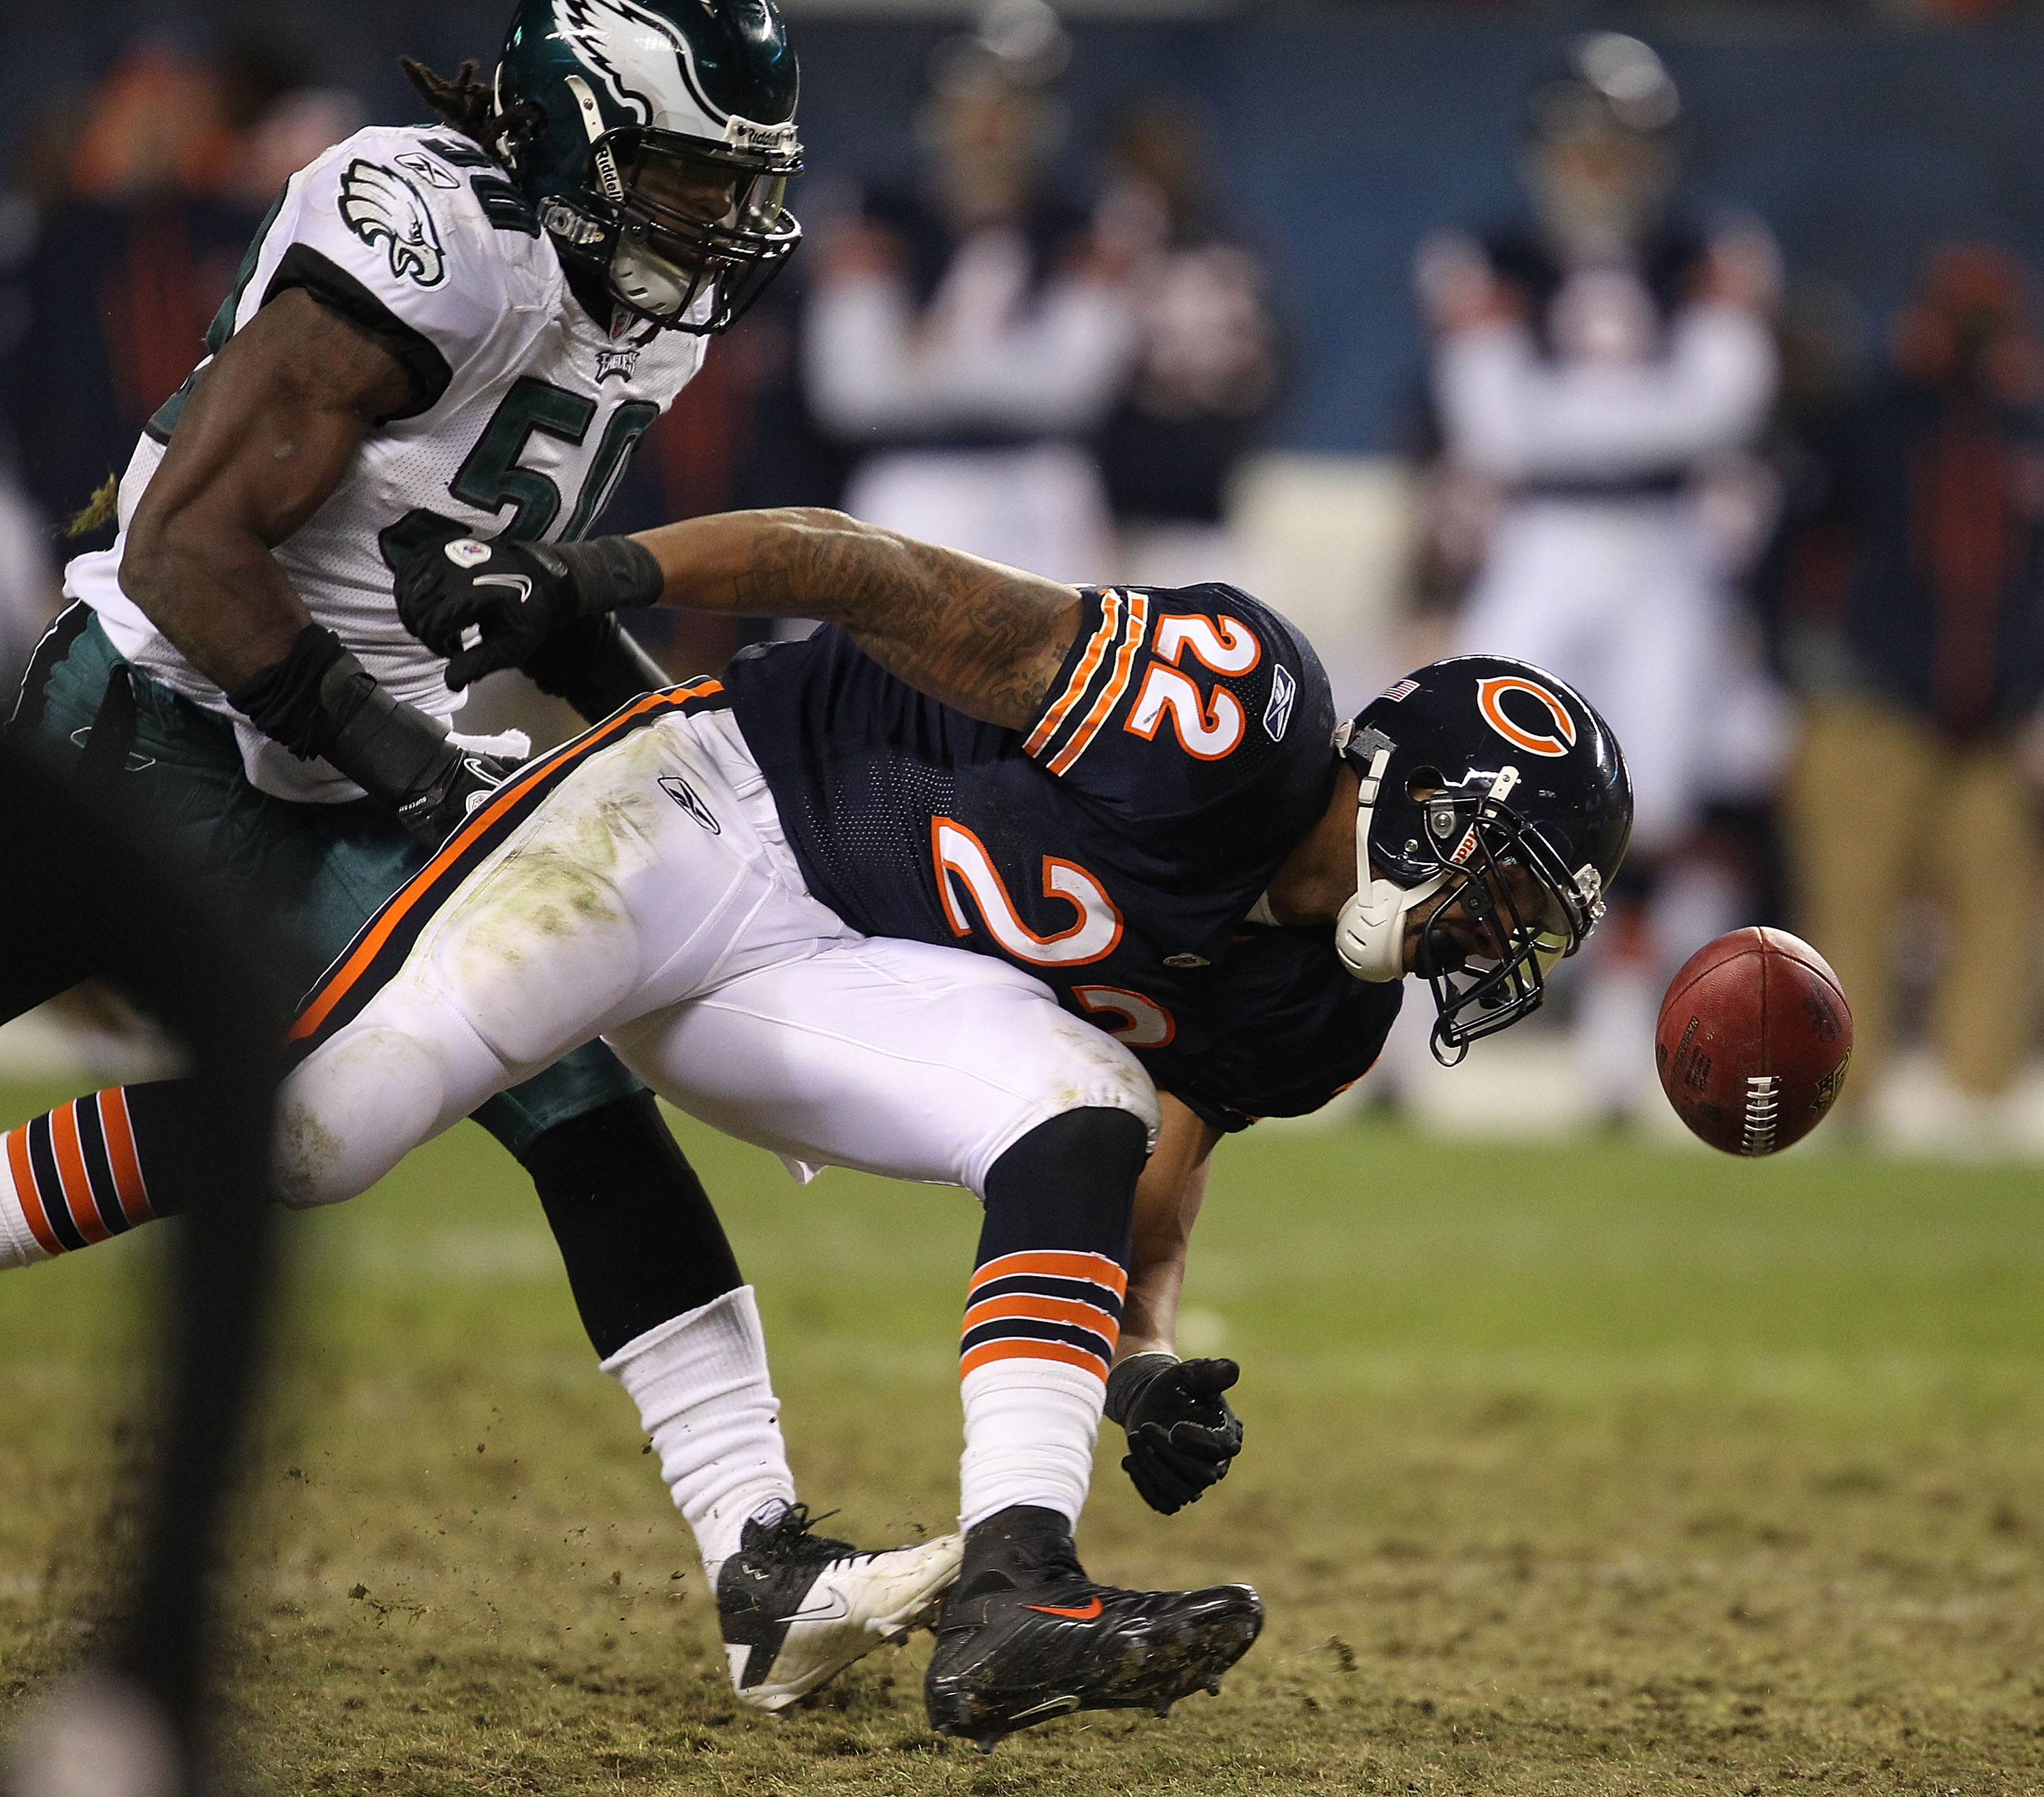 CHICAGO - NOVEMBER 28: Matt Forte #22 of the Chicago Bears can't hold onto the football after being pushed by Ernie Sims #50 of the Philadelphia Eagles at Soldier Field on November 28, 2010 in Chicago, Illinois. The Bears defeated the Eagles 31-26. (Photo